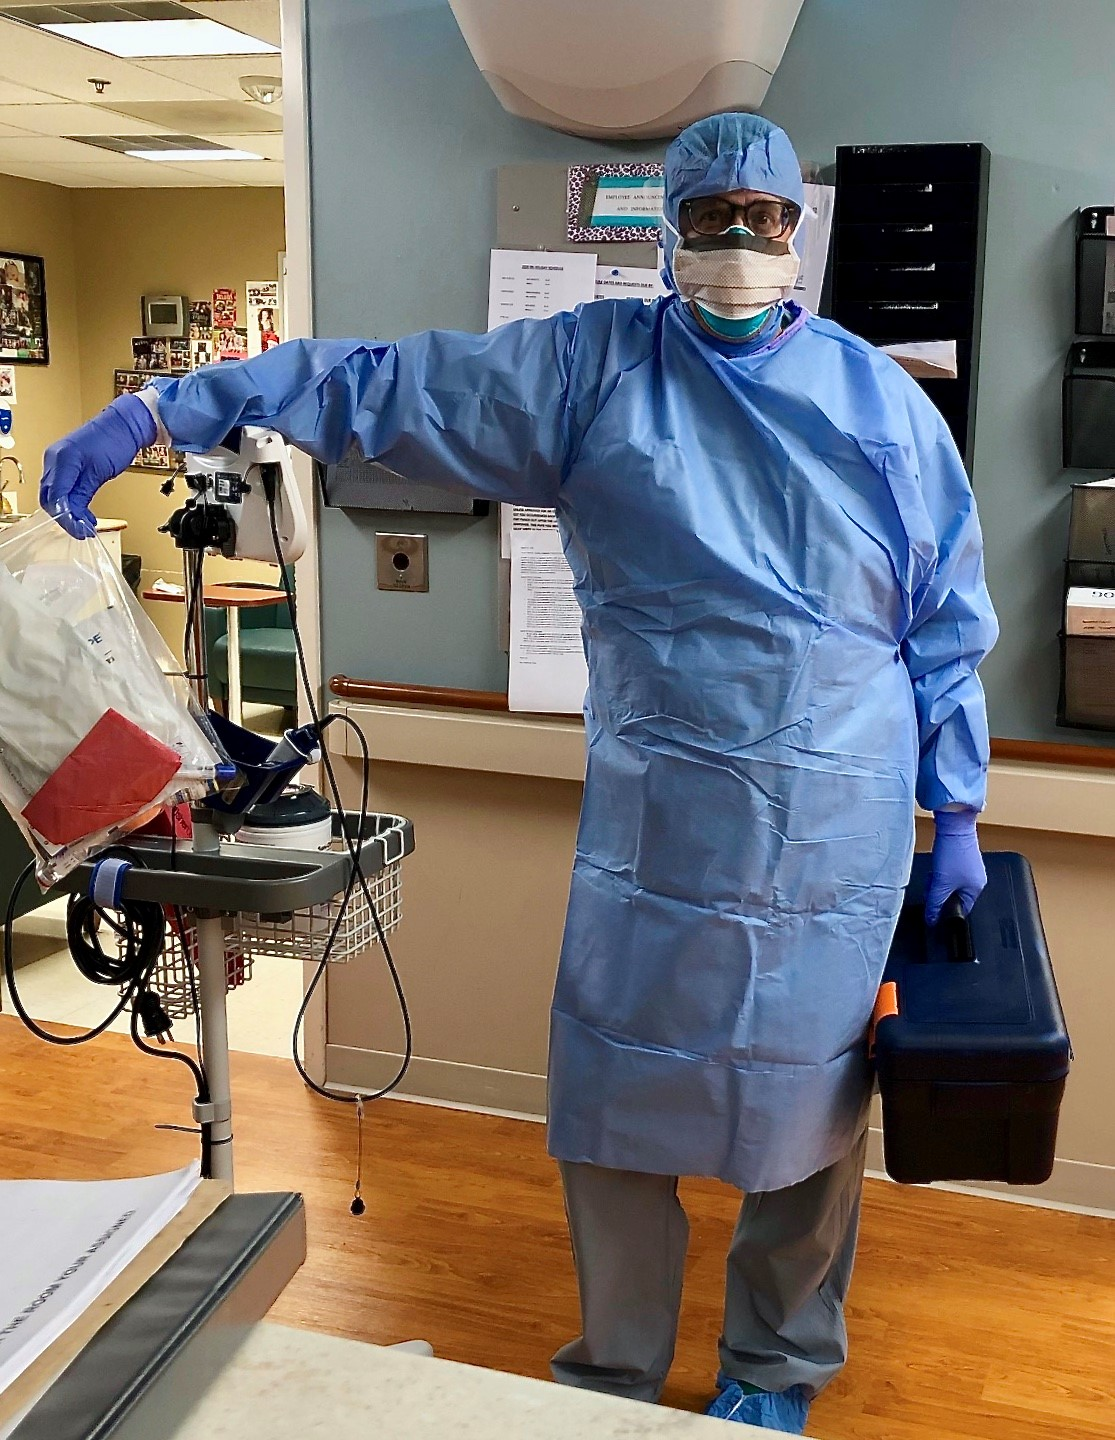 Mike stands with a videoscope station and holds a toolbox while dressed in protective equipment. He is about to assess a patient with suspected COVID-19